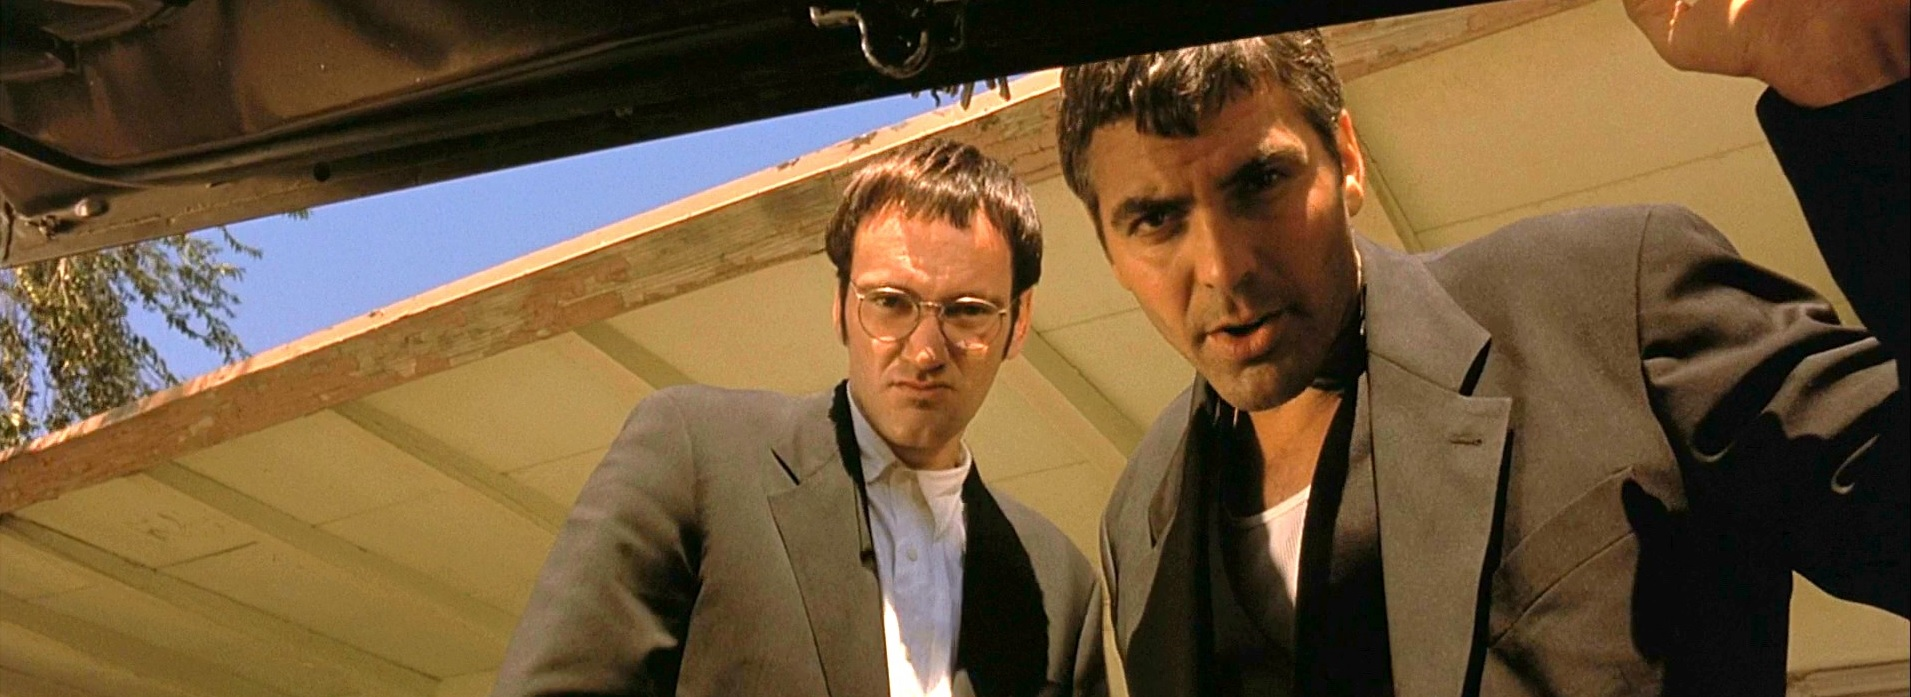 EP 125 - From Dusk Till Dawn (1996)